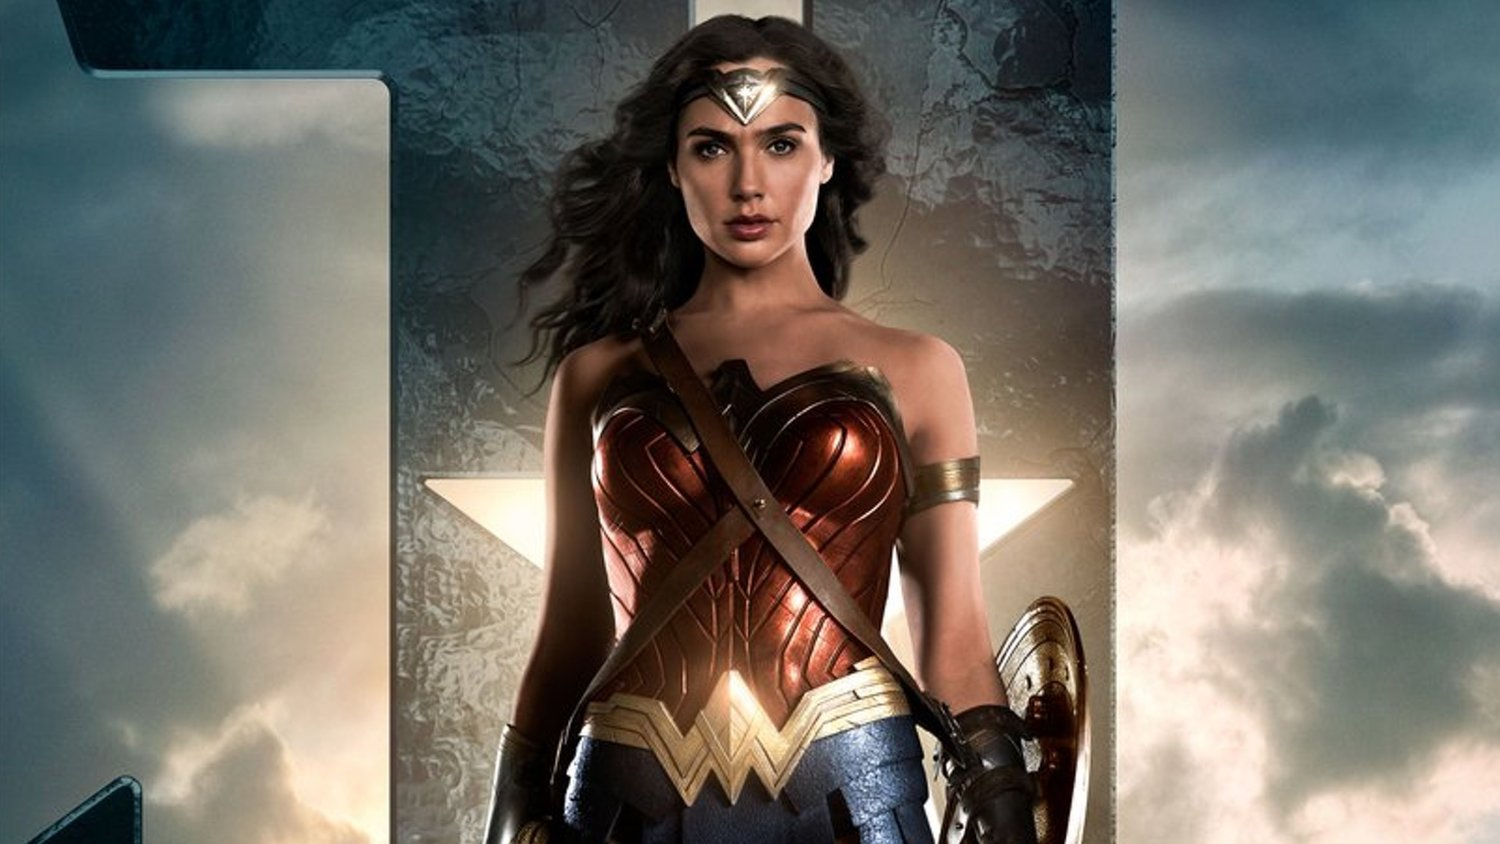 The Wonder Woman Promo Spot and Poster for JUSTICE LEAGUE Tease the Flying Fox